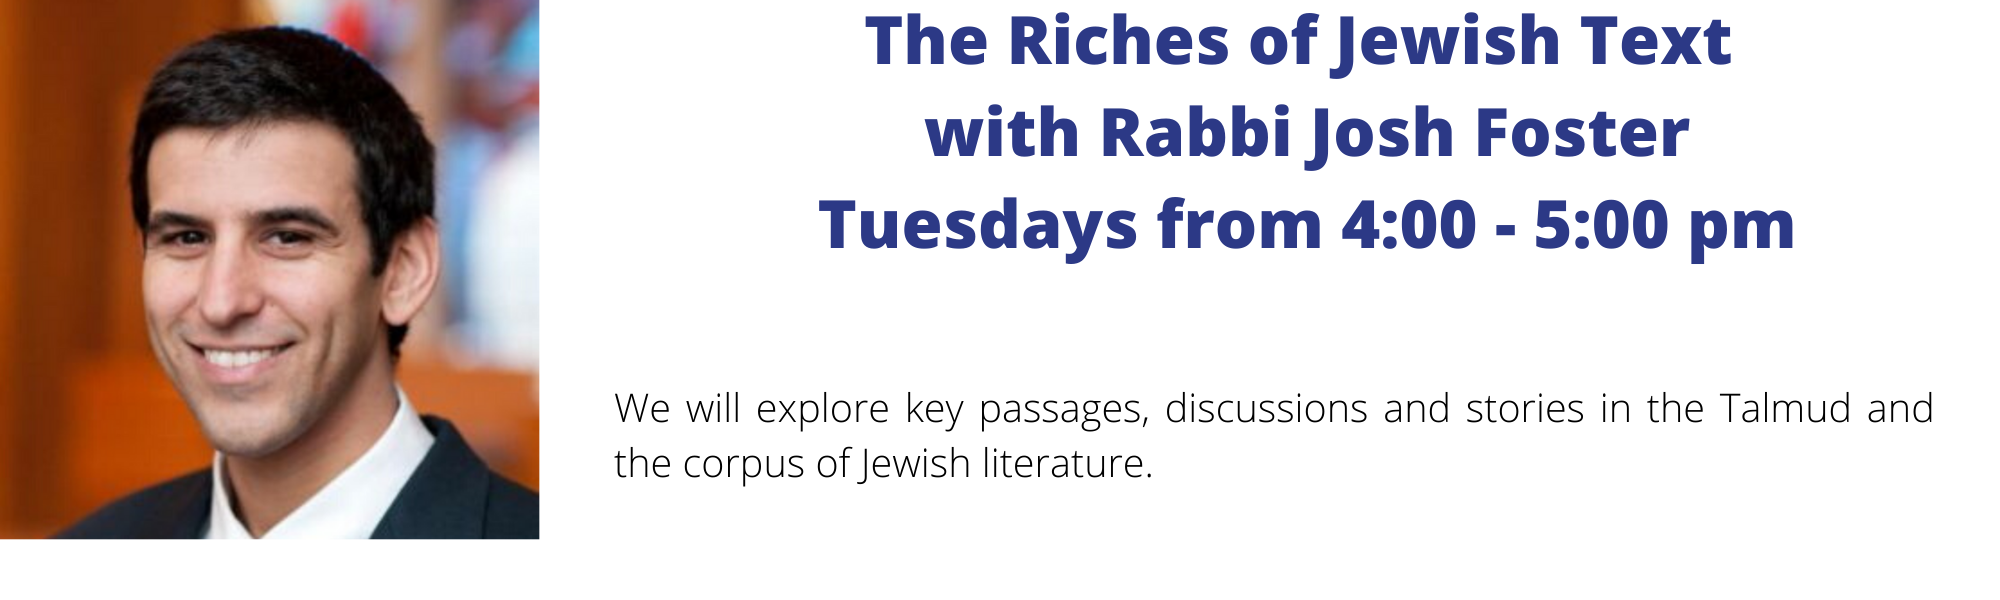 Banner Image for The Riches of Jewish Text with Rabbi Josh Foster